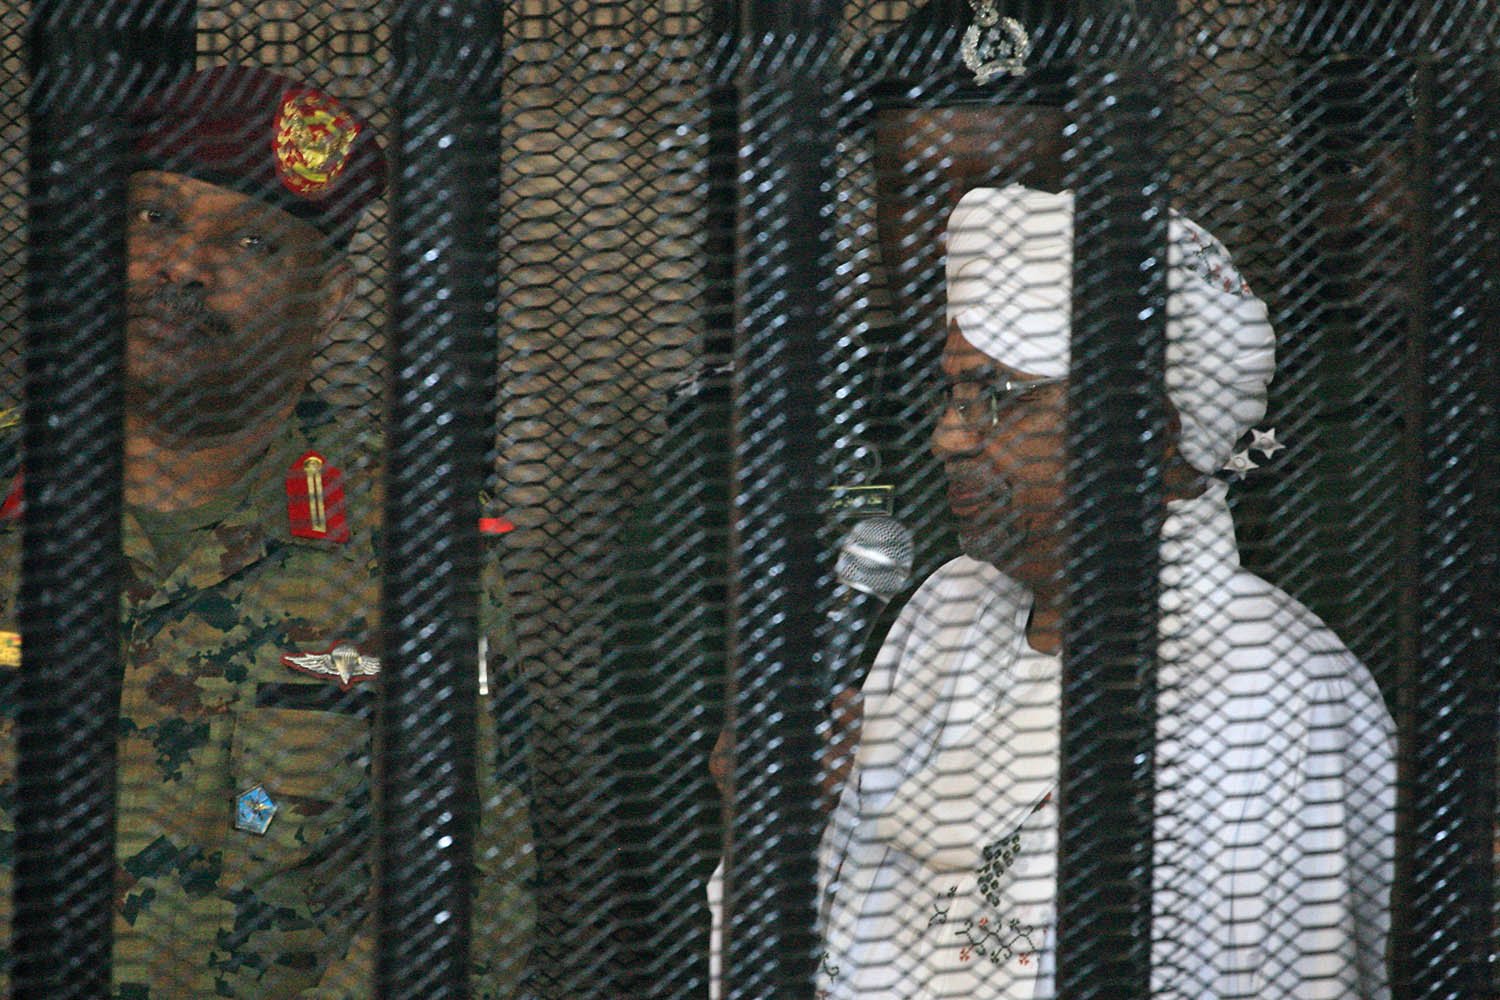 Sudan's deposed ruler Omar al-Bashir stands in a defendant's cage during the opening of his cor-ruption trial in Khartoum on Aug. 19.